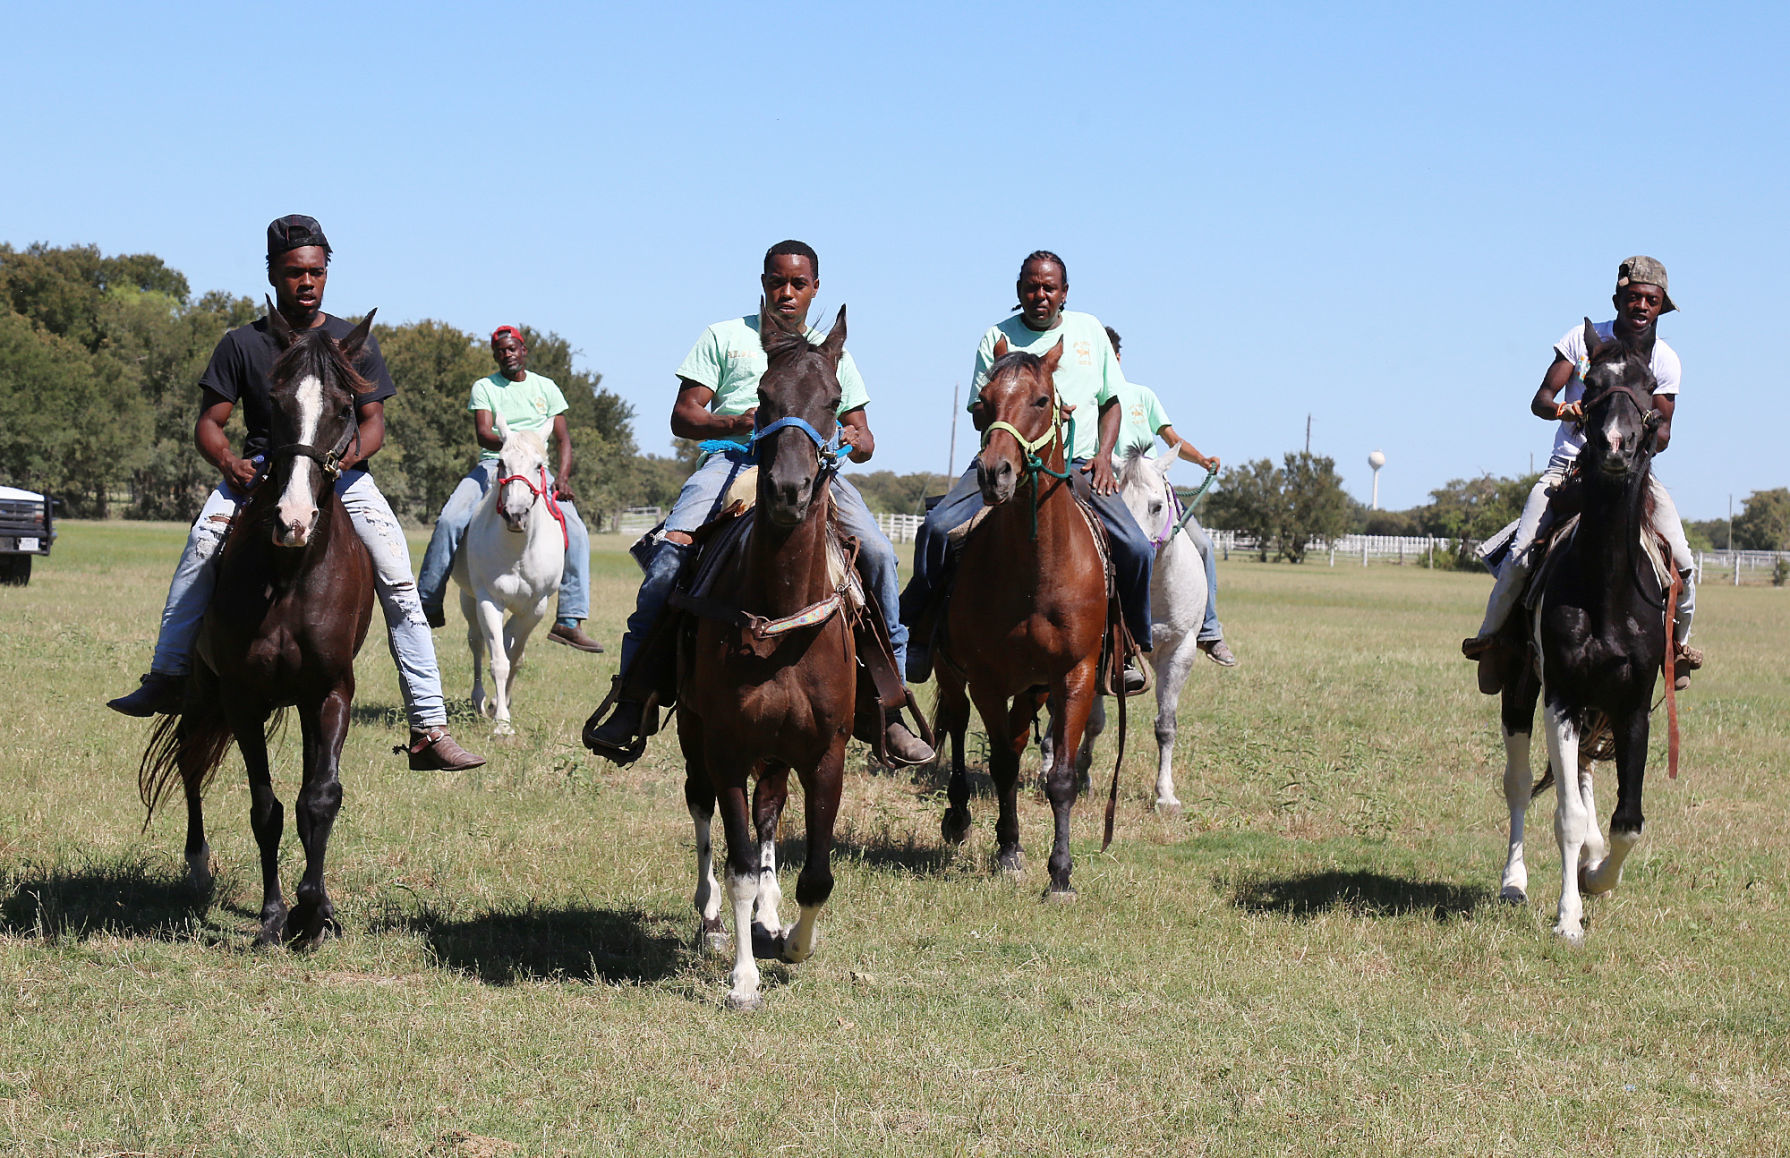 Black Horse Riding Clubs Emphasize Community Practical Life Lessons Local News Wacotrib Com